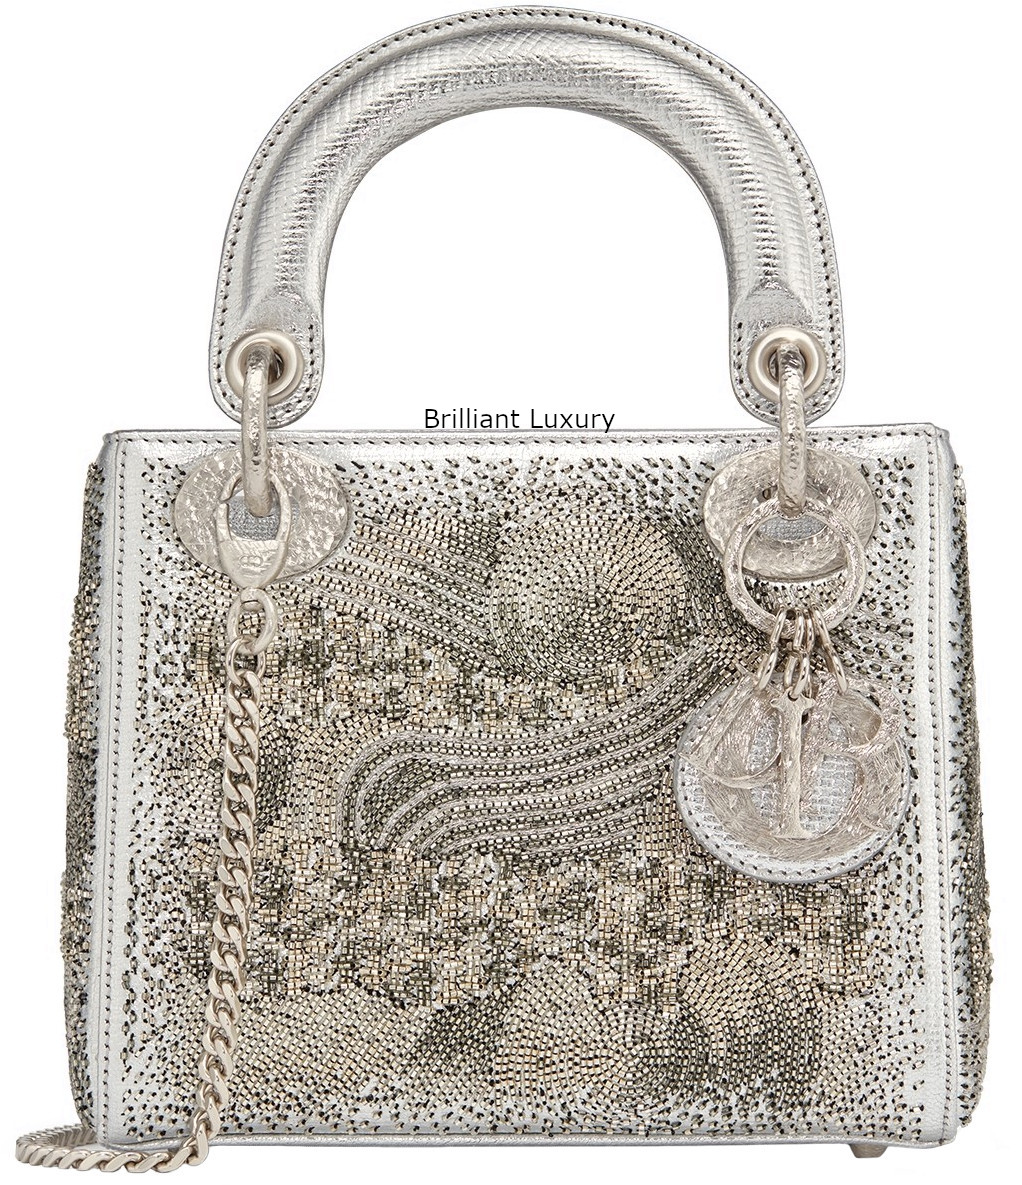 Lady Dior Art Bag in silver color textured goatskin embroidered with metallized tubes-hand-hammered silver tone metal charms Designer Olga de Amaral